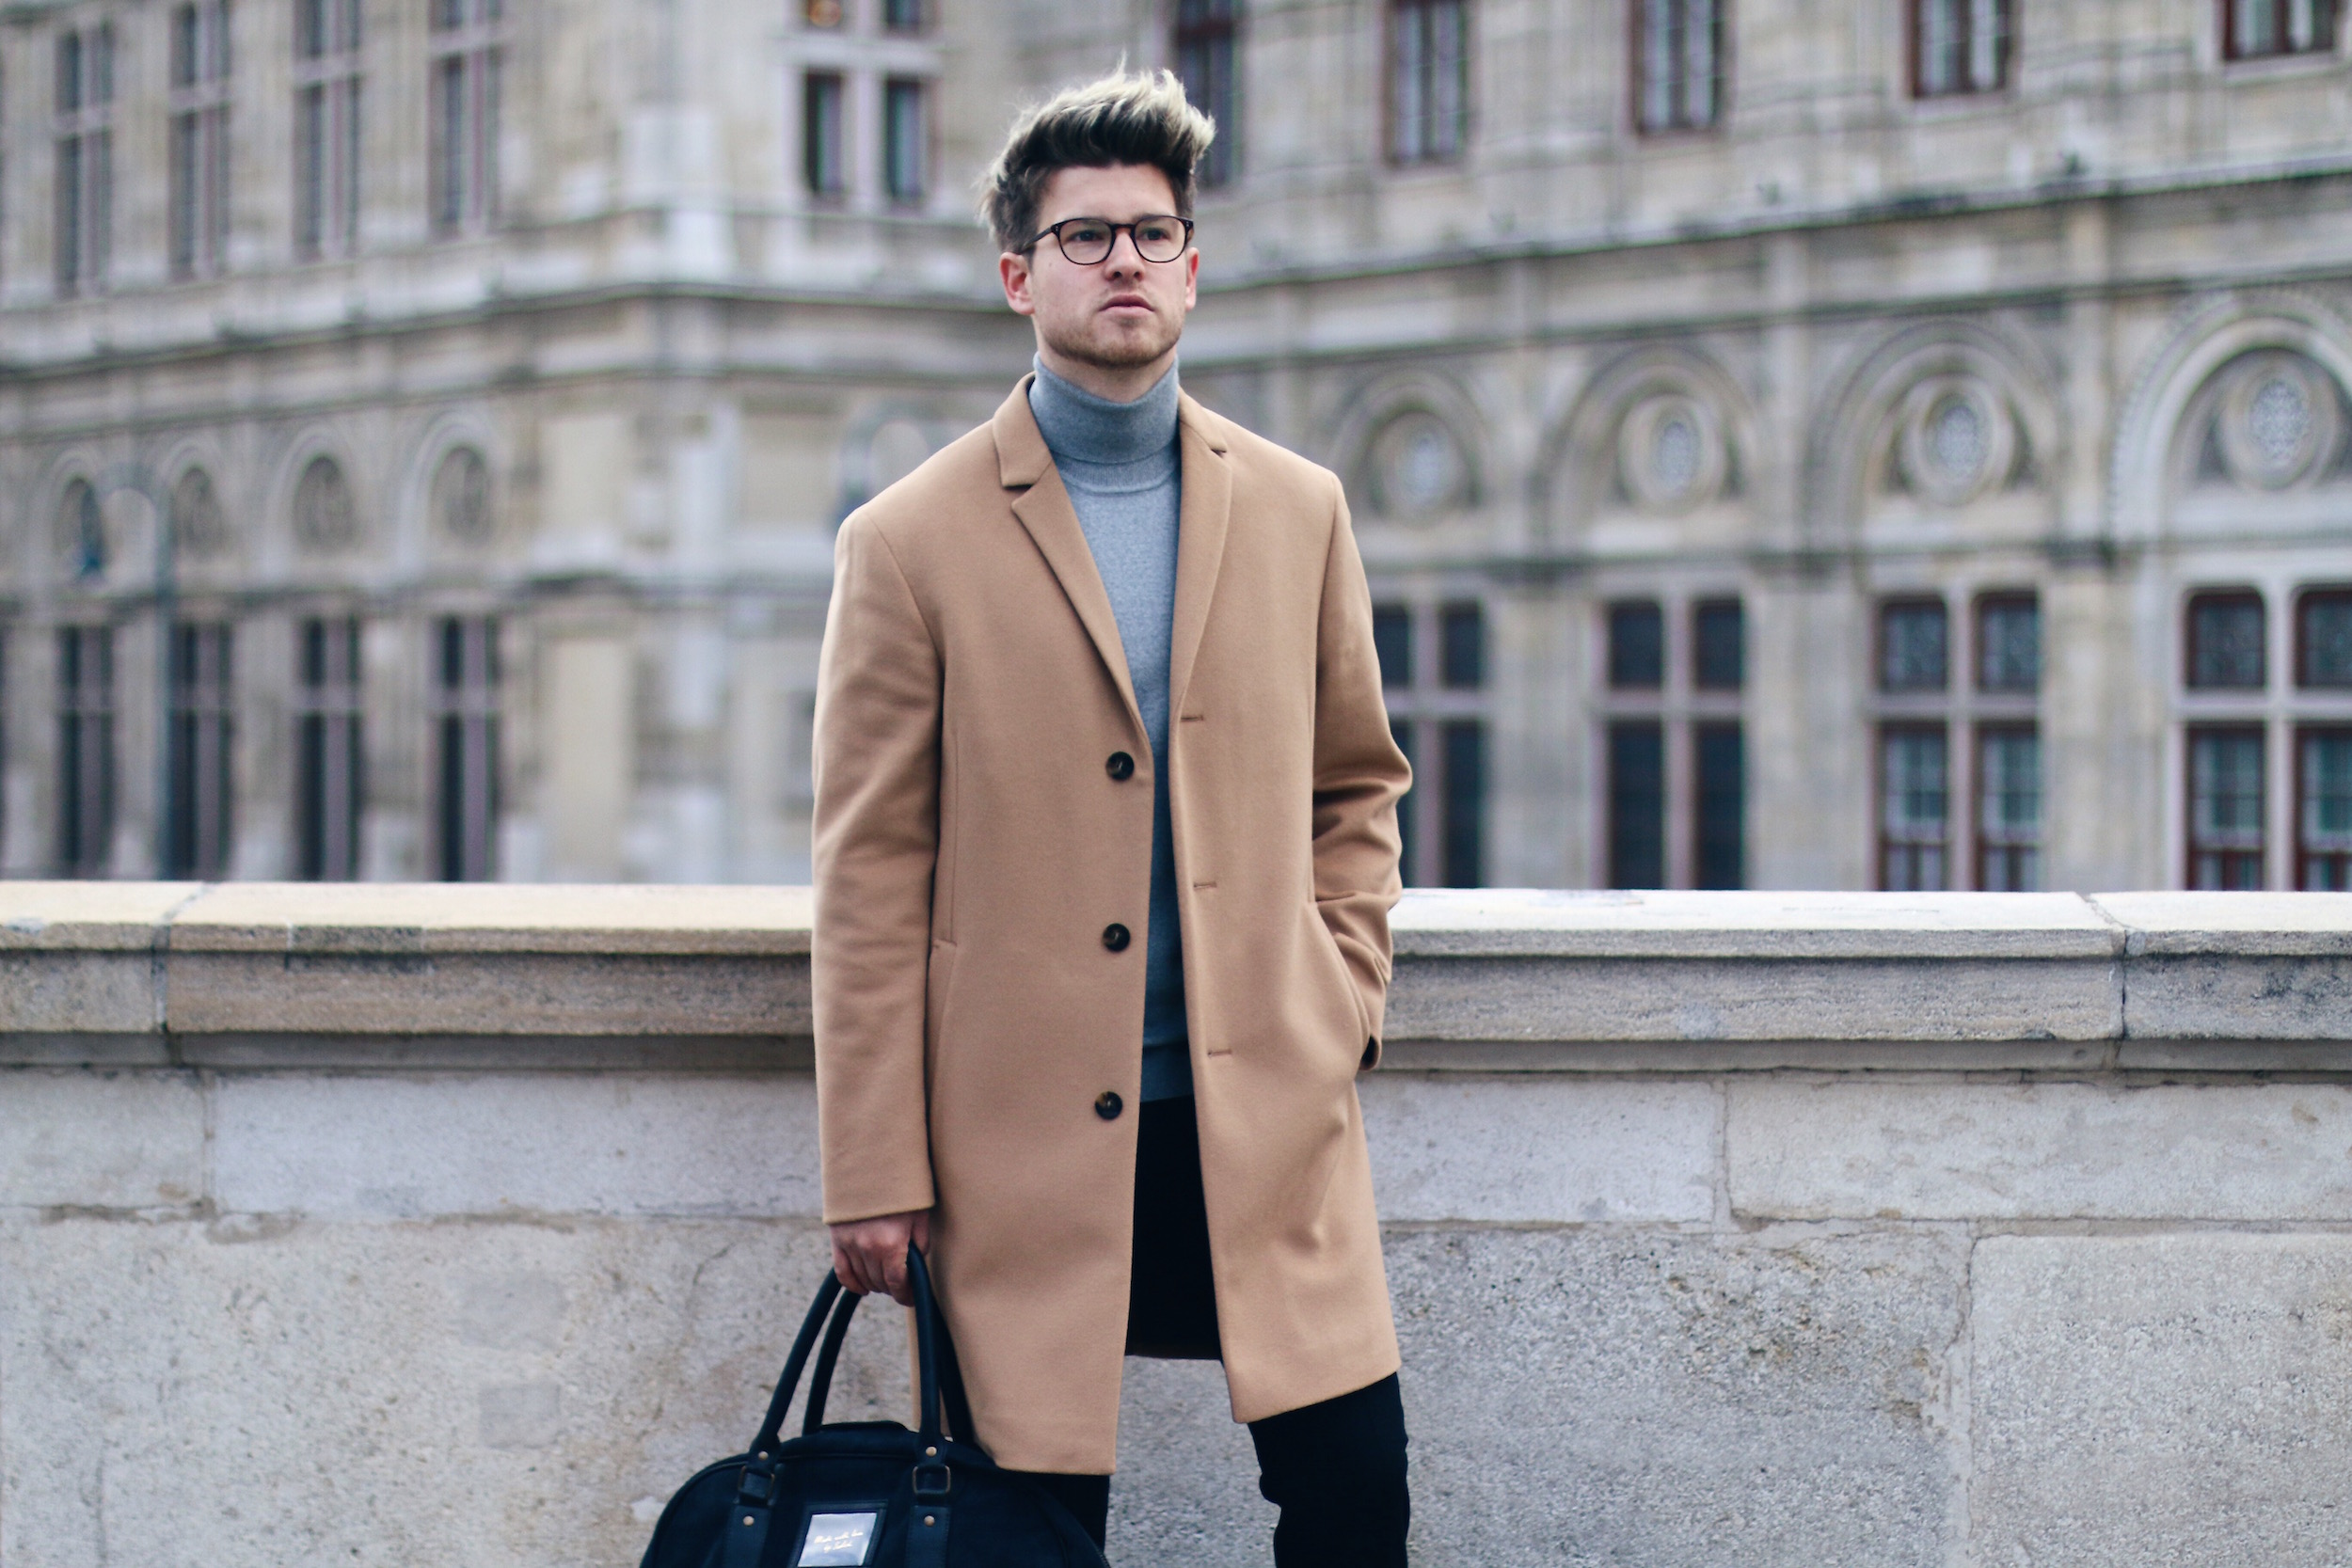 Peek & Cloppenburg Online Shop Launch Austria_Outfit Calvin Klein Camel Coat by Meanwhile in Awesometown_Austrian Mens Fashion and Lifestyle Blog 11